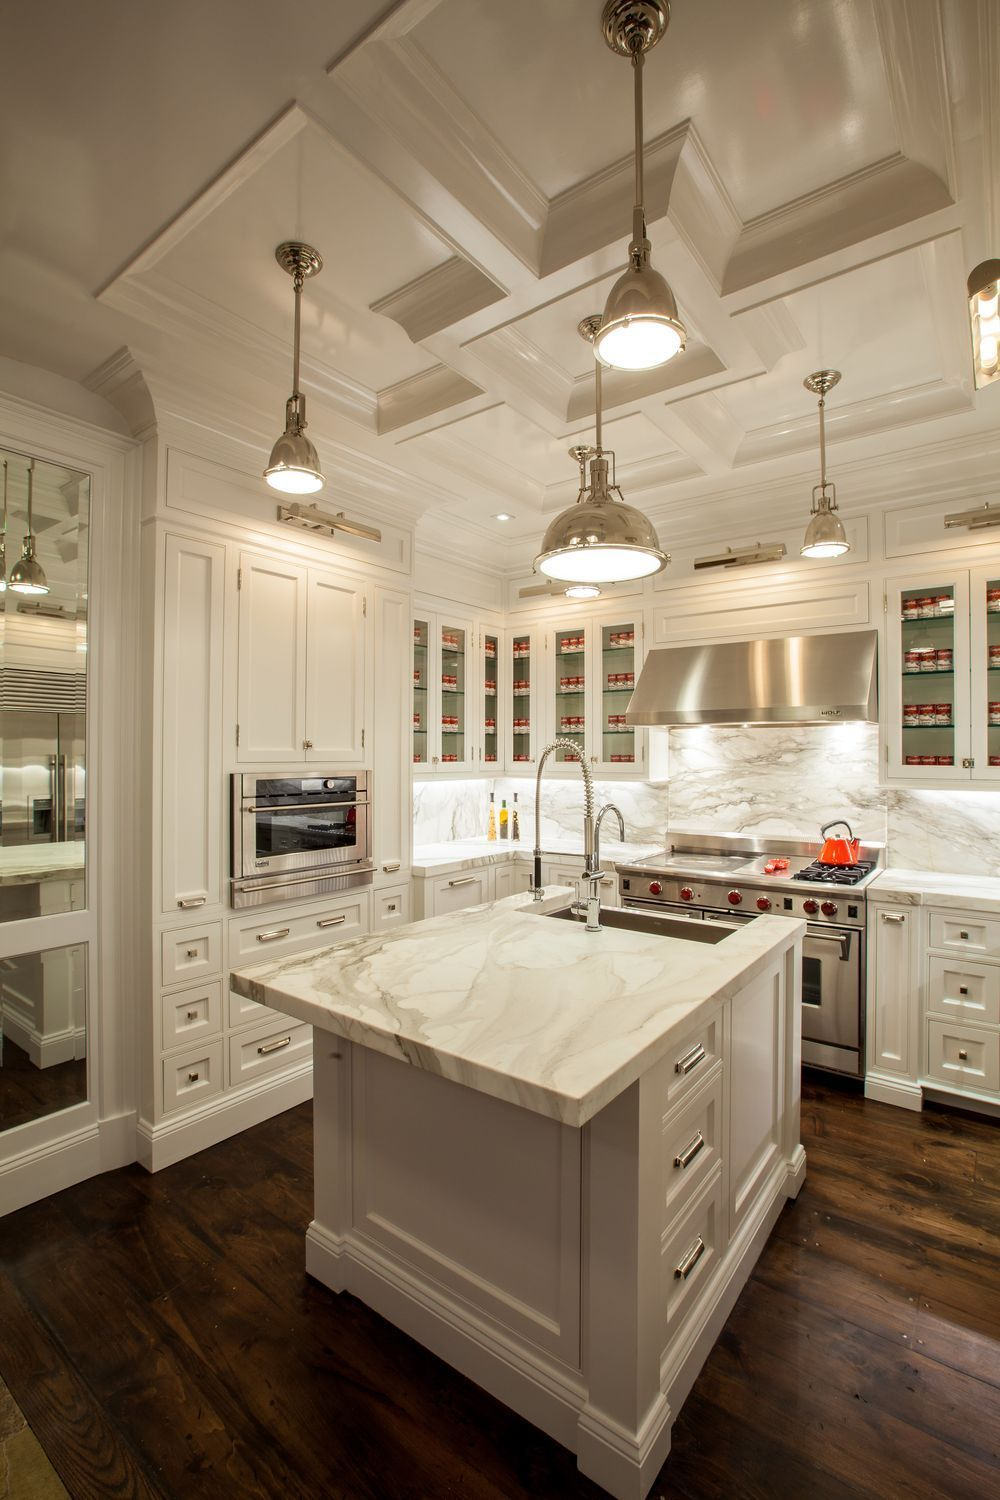 Covet House Provides You Excellent Kitchen Ideas To Inspire You To